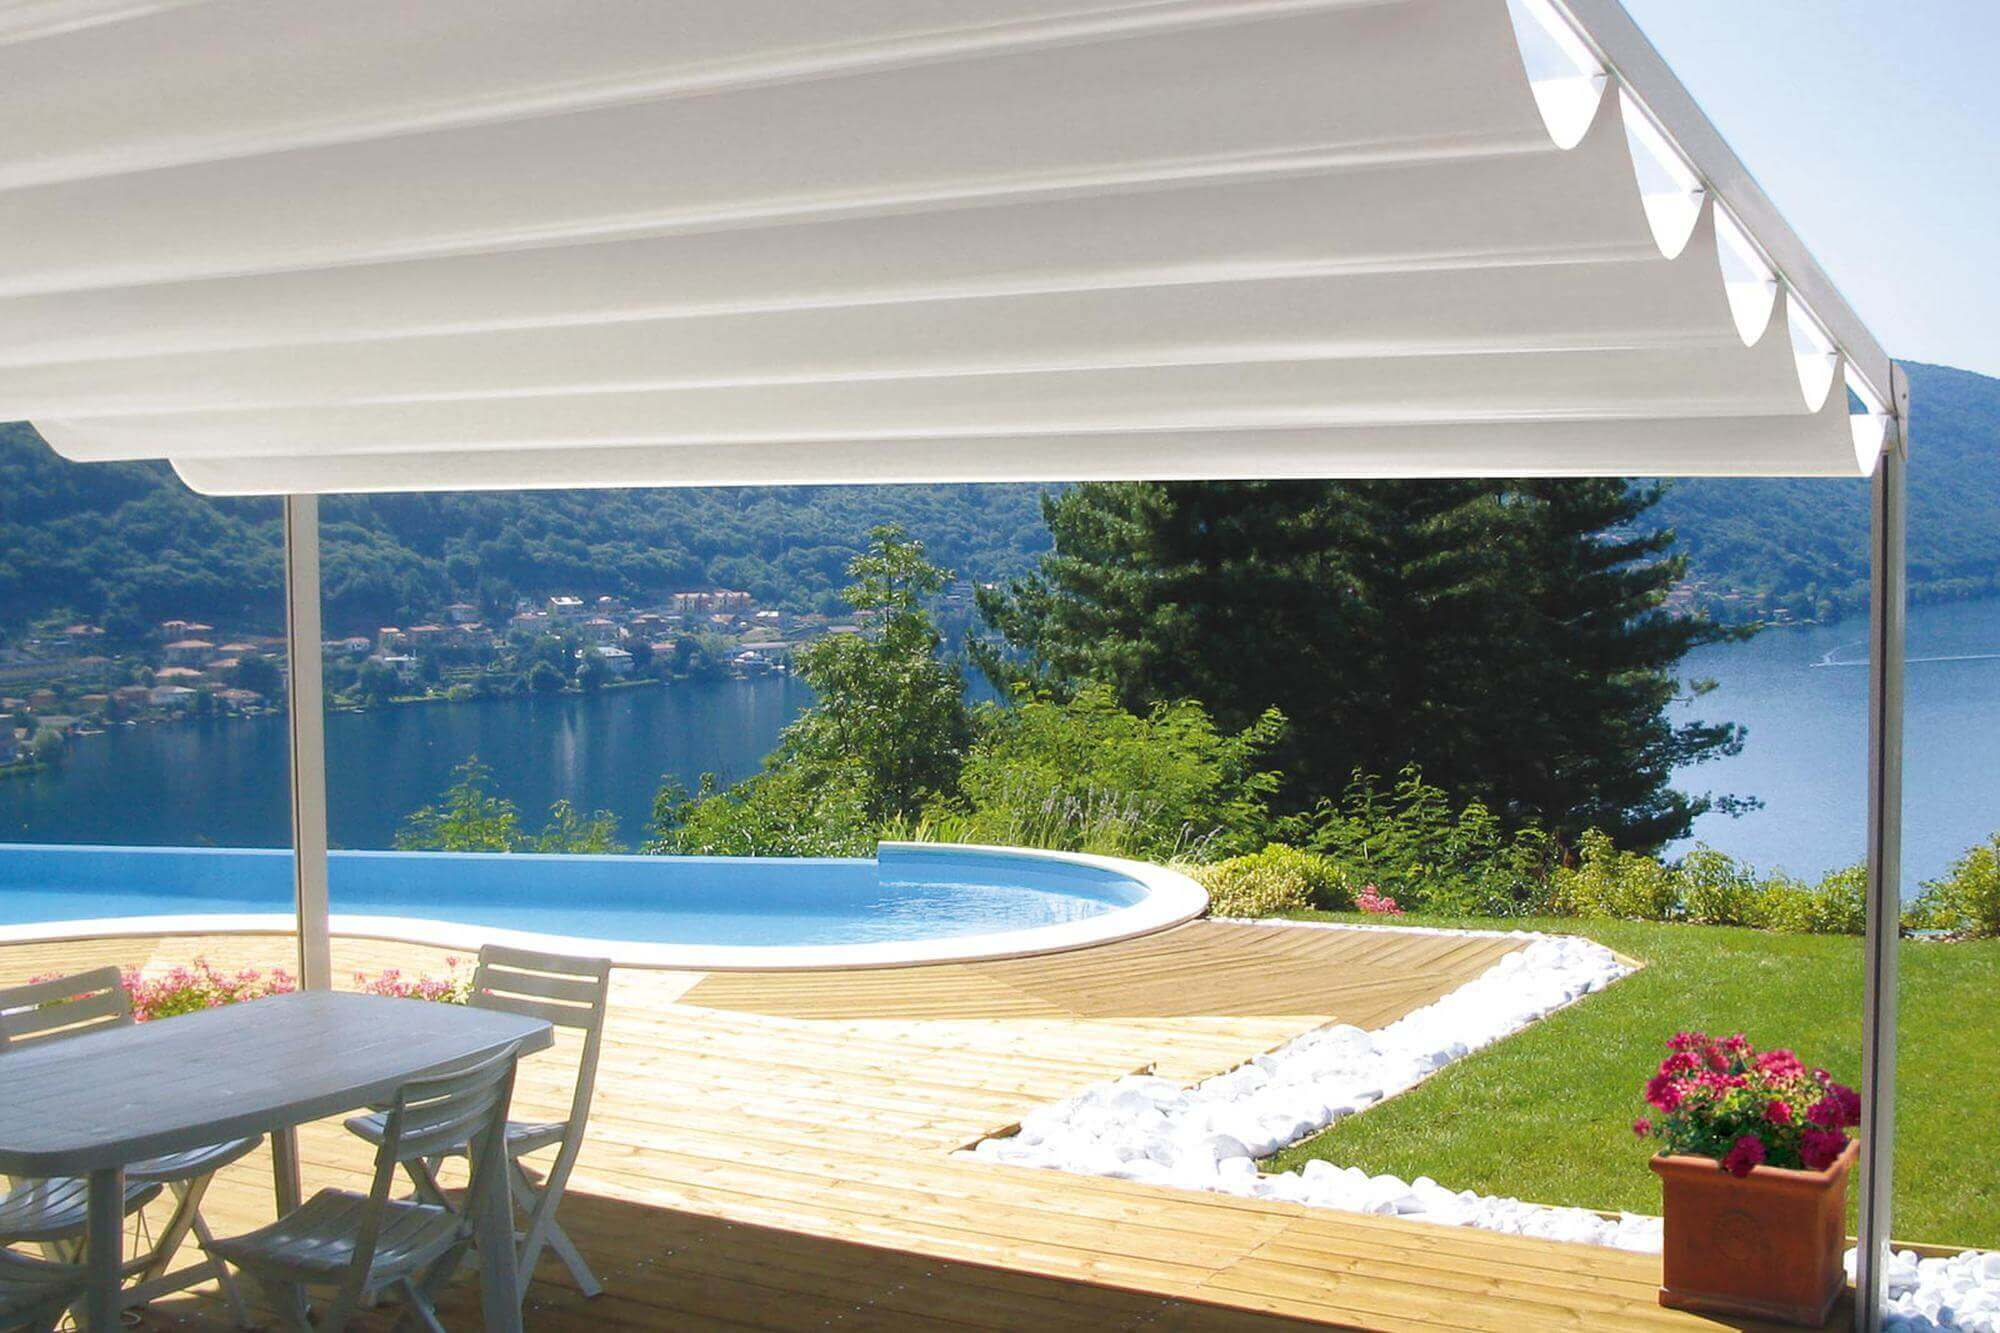 firenze plus retractable residential commercial waterproof patio deck attached pergola cover system